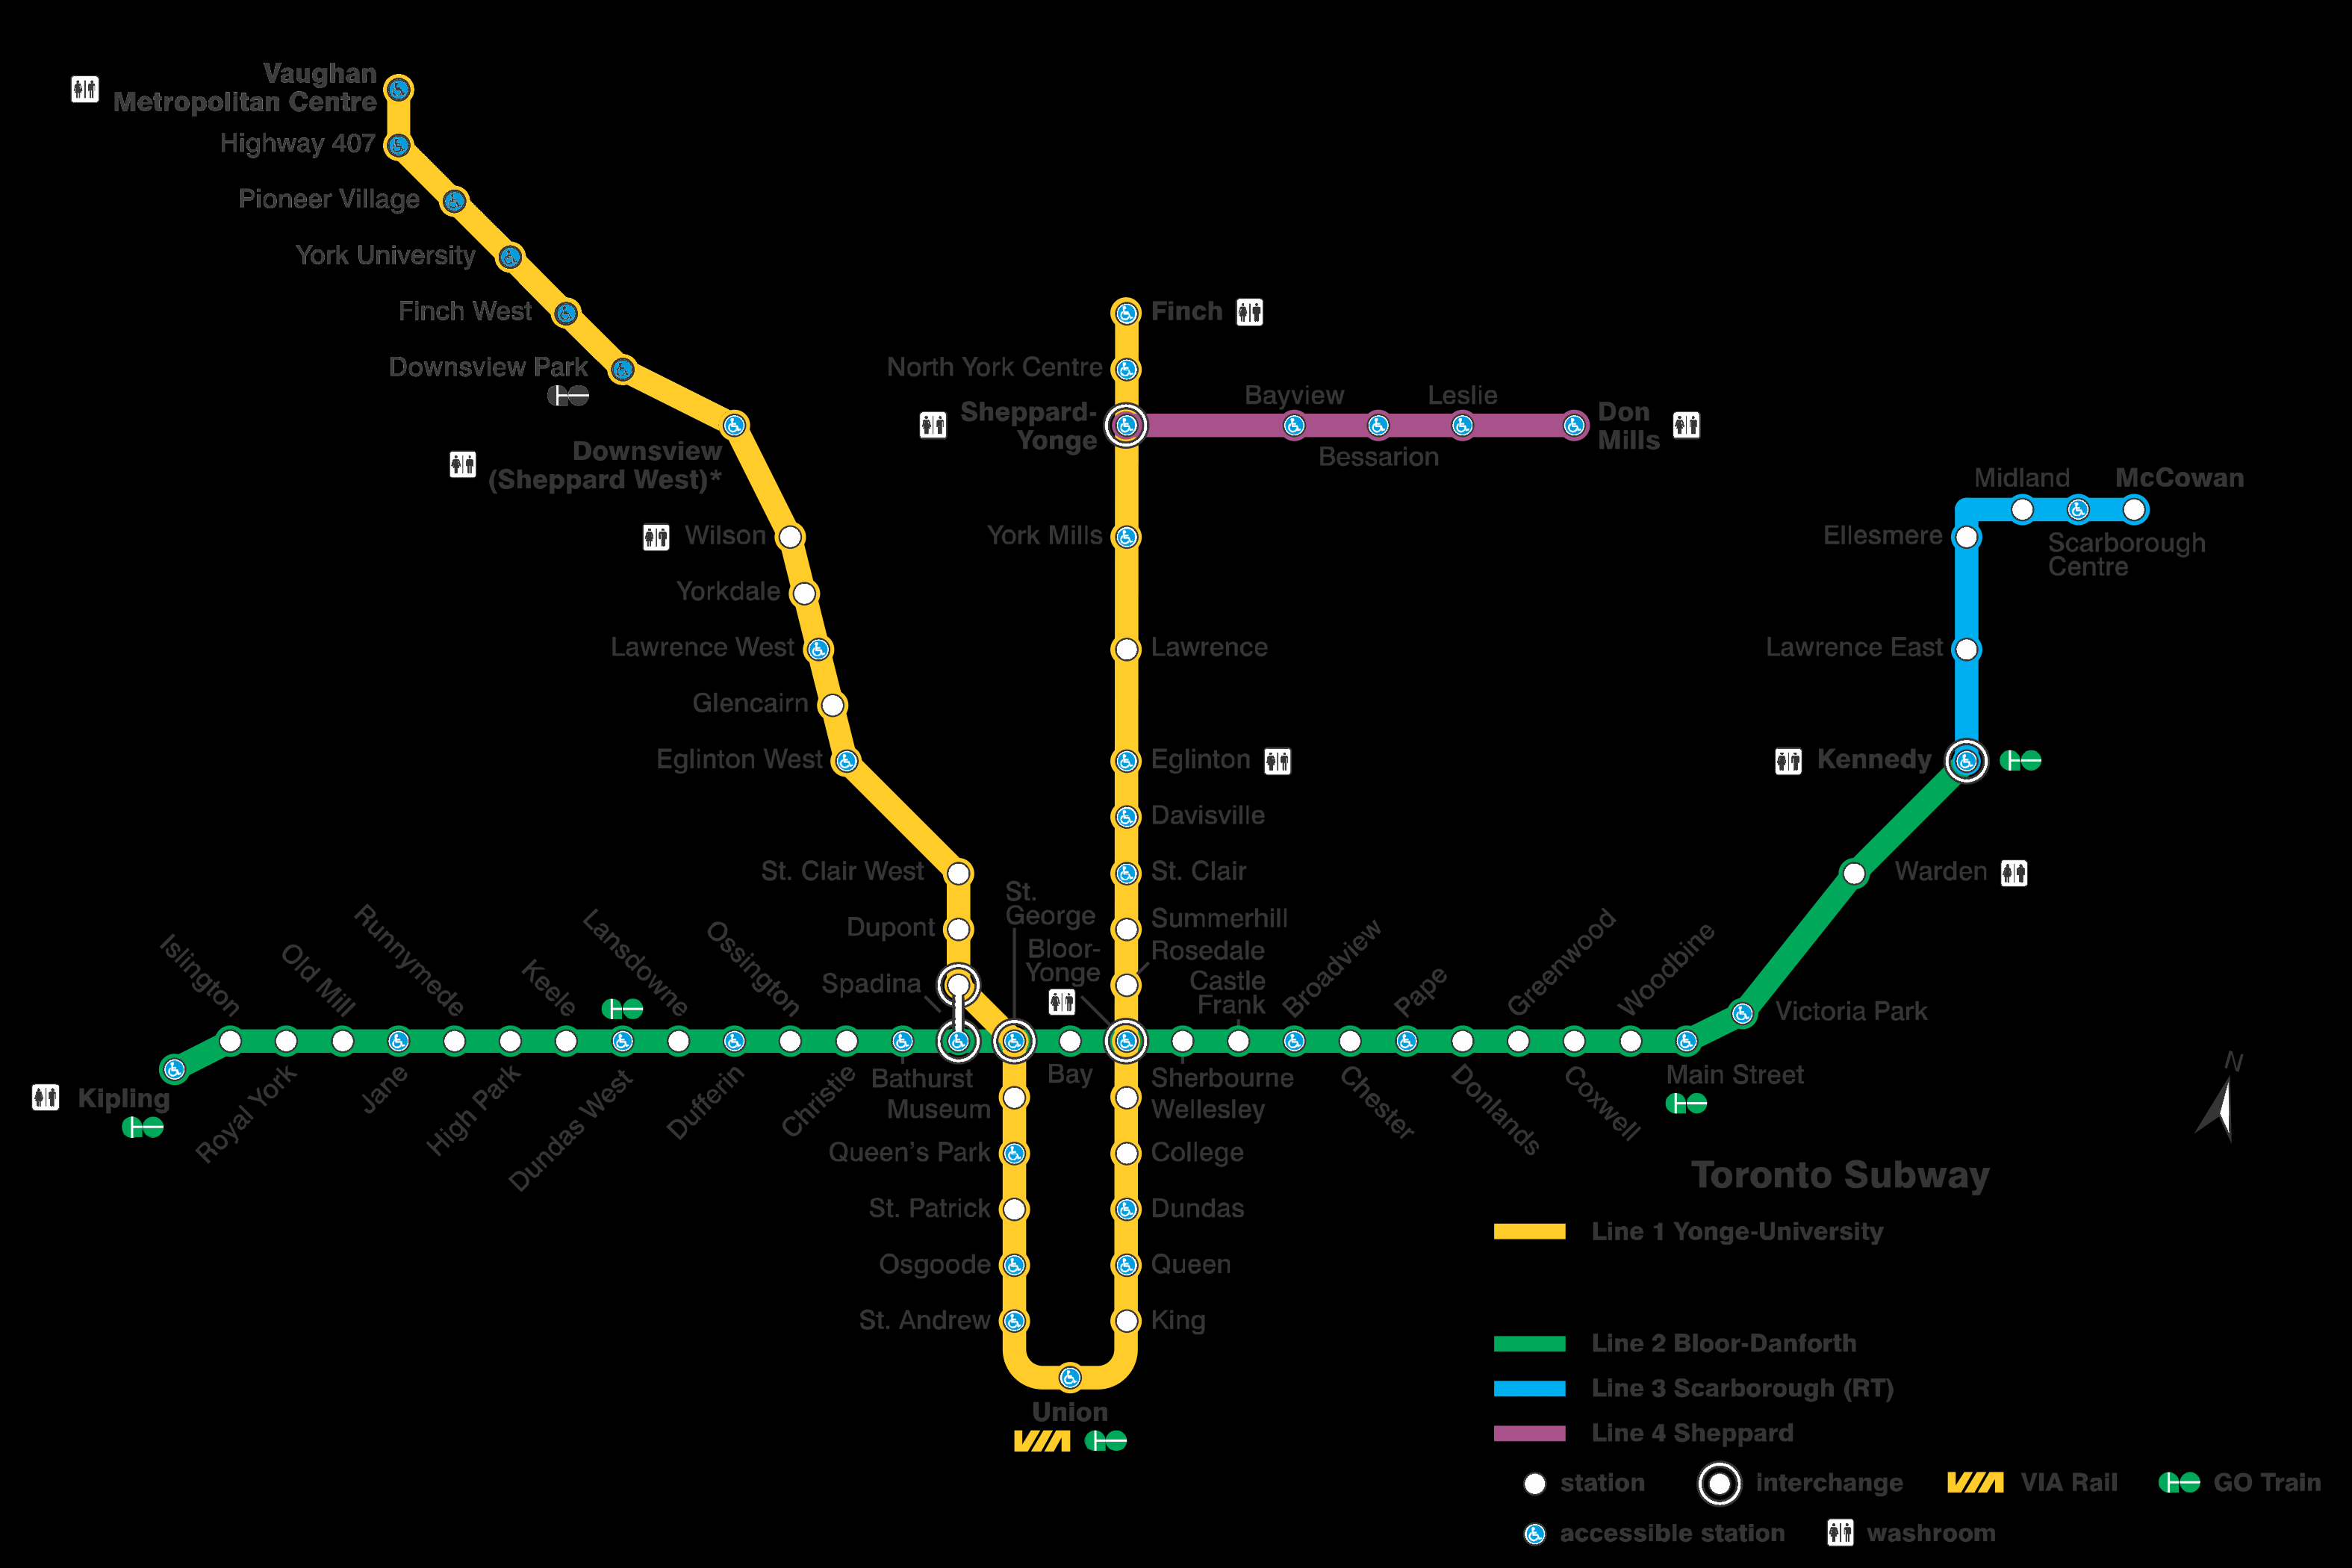 Toronto Subway System Info & Interactive TTC Subway Map toronto subway map